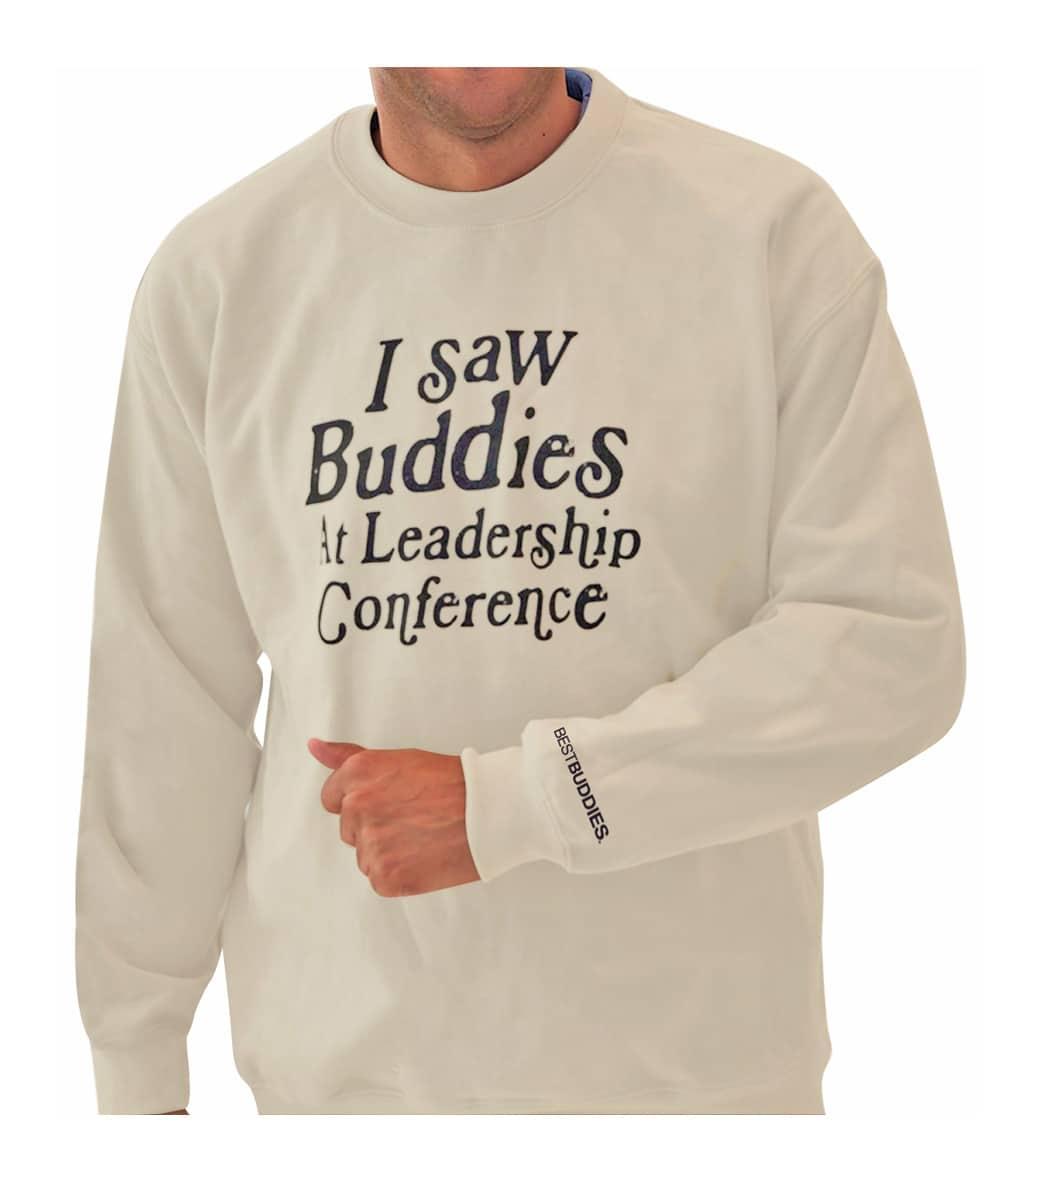 I Saw Buddies Sweater (Sandstone)